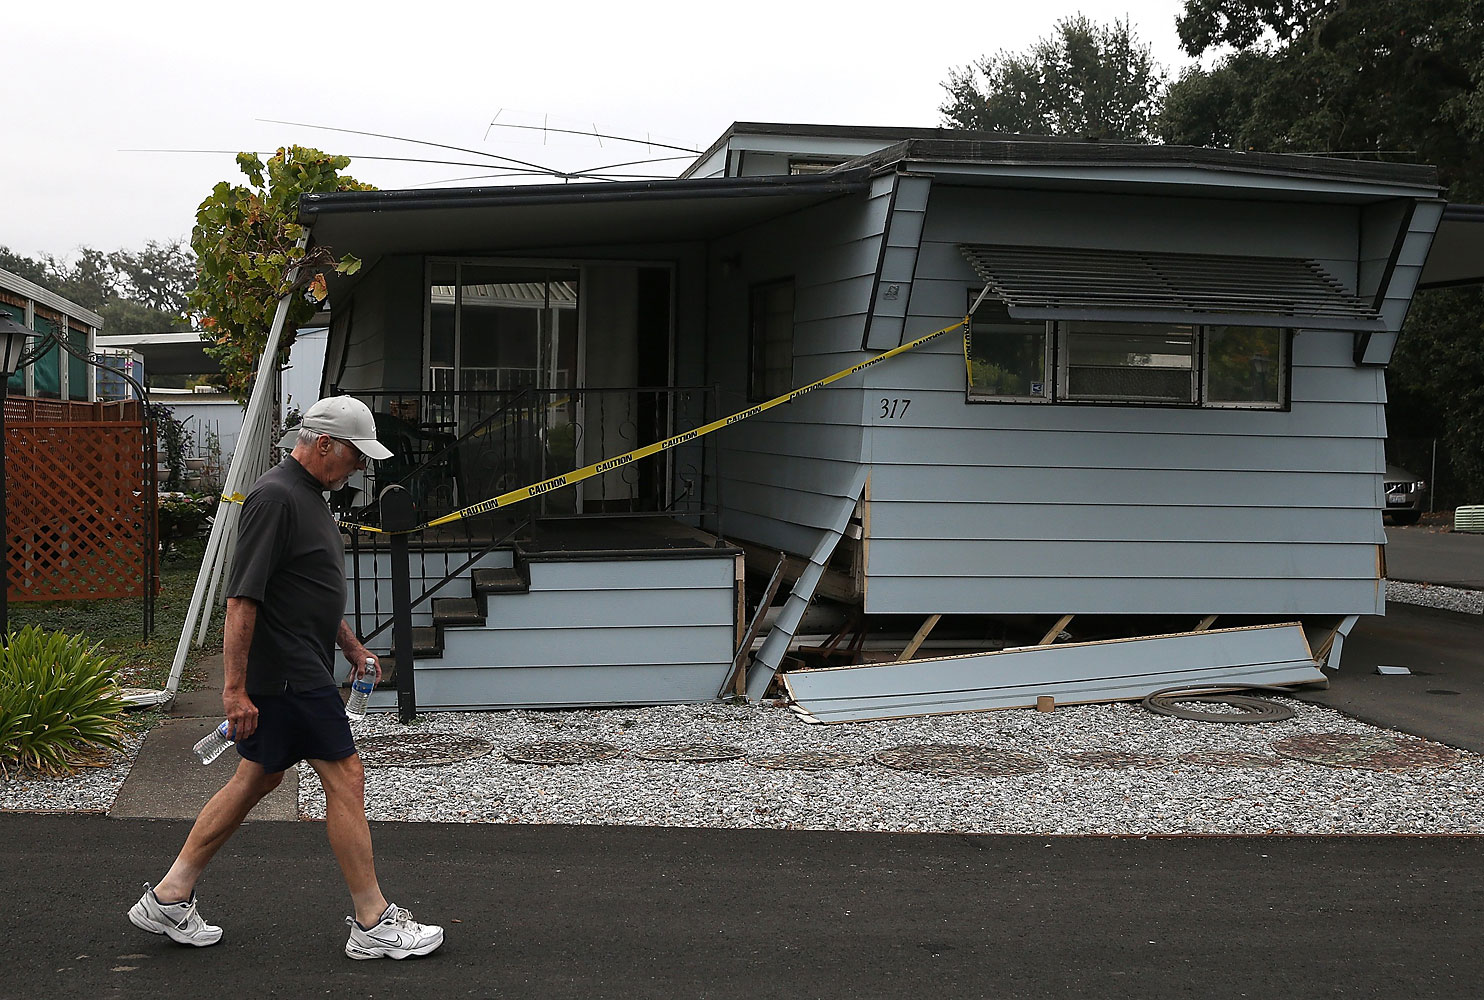 A pedestrian walks by a mobile home that shifted off of its foundation in Napa, Calif.